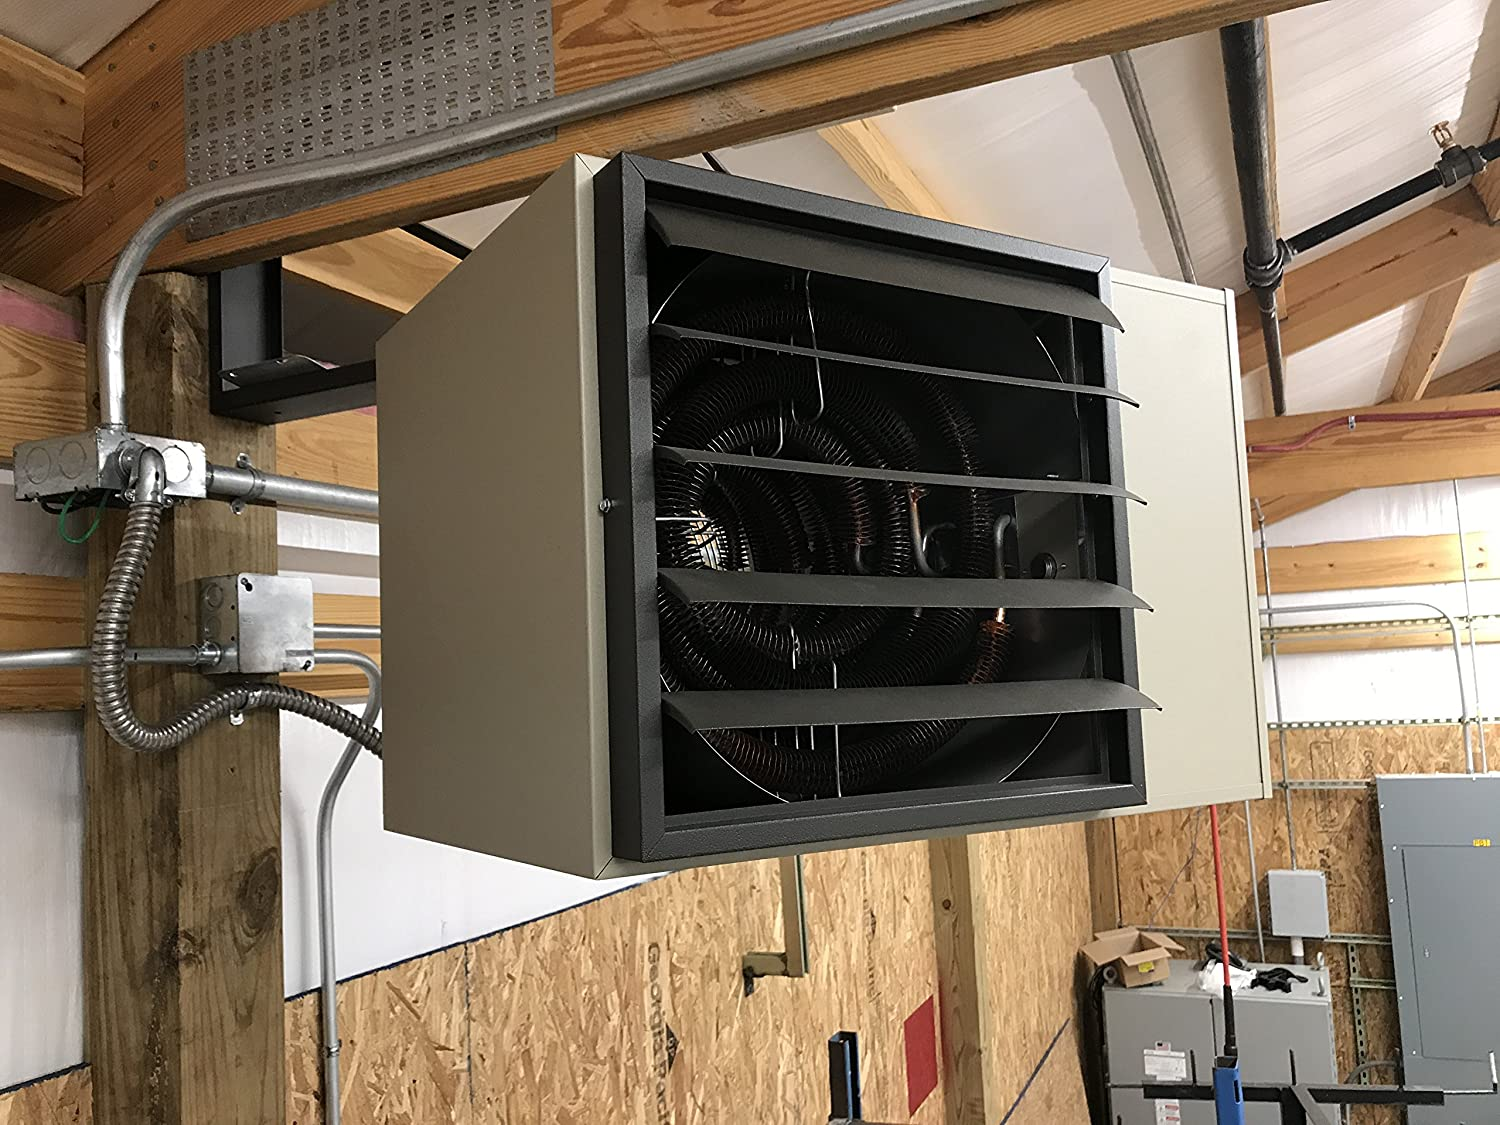 240 V Phase 1 TPI H1HUH05003 Series UH Horizontal Fan Forced Unit Heater Amps 20.8